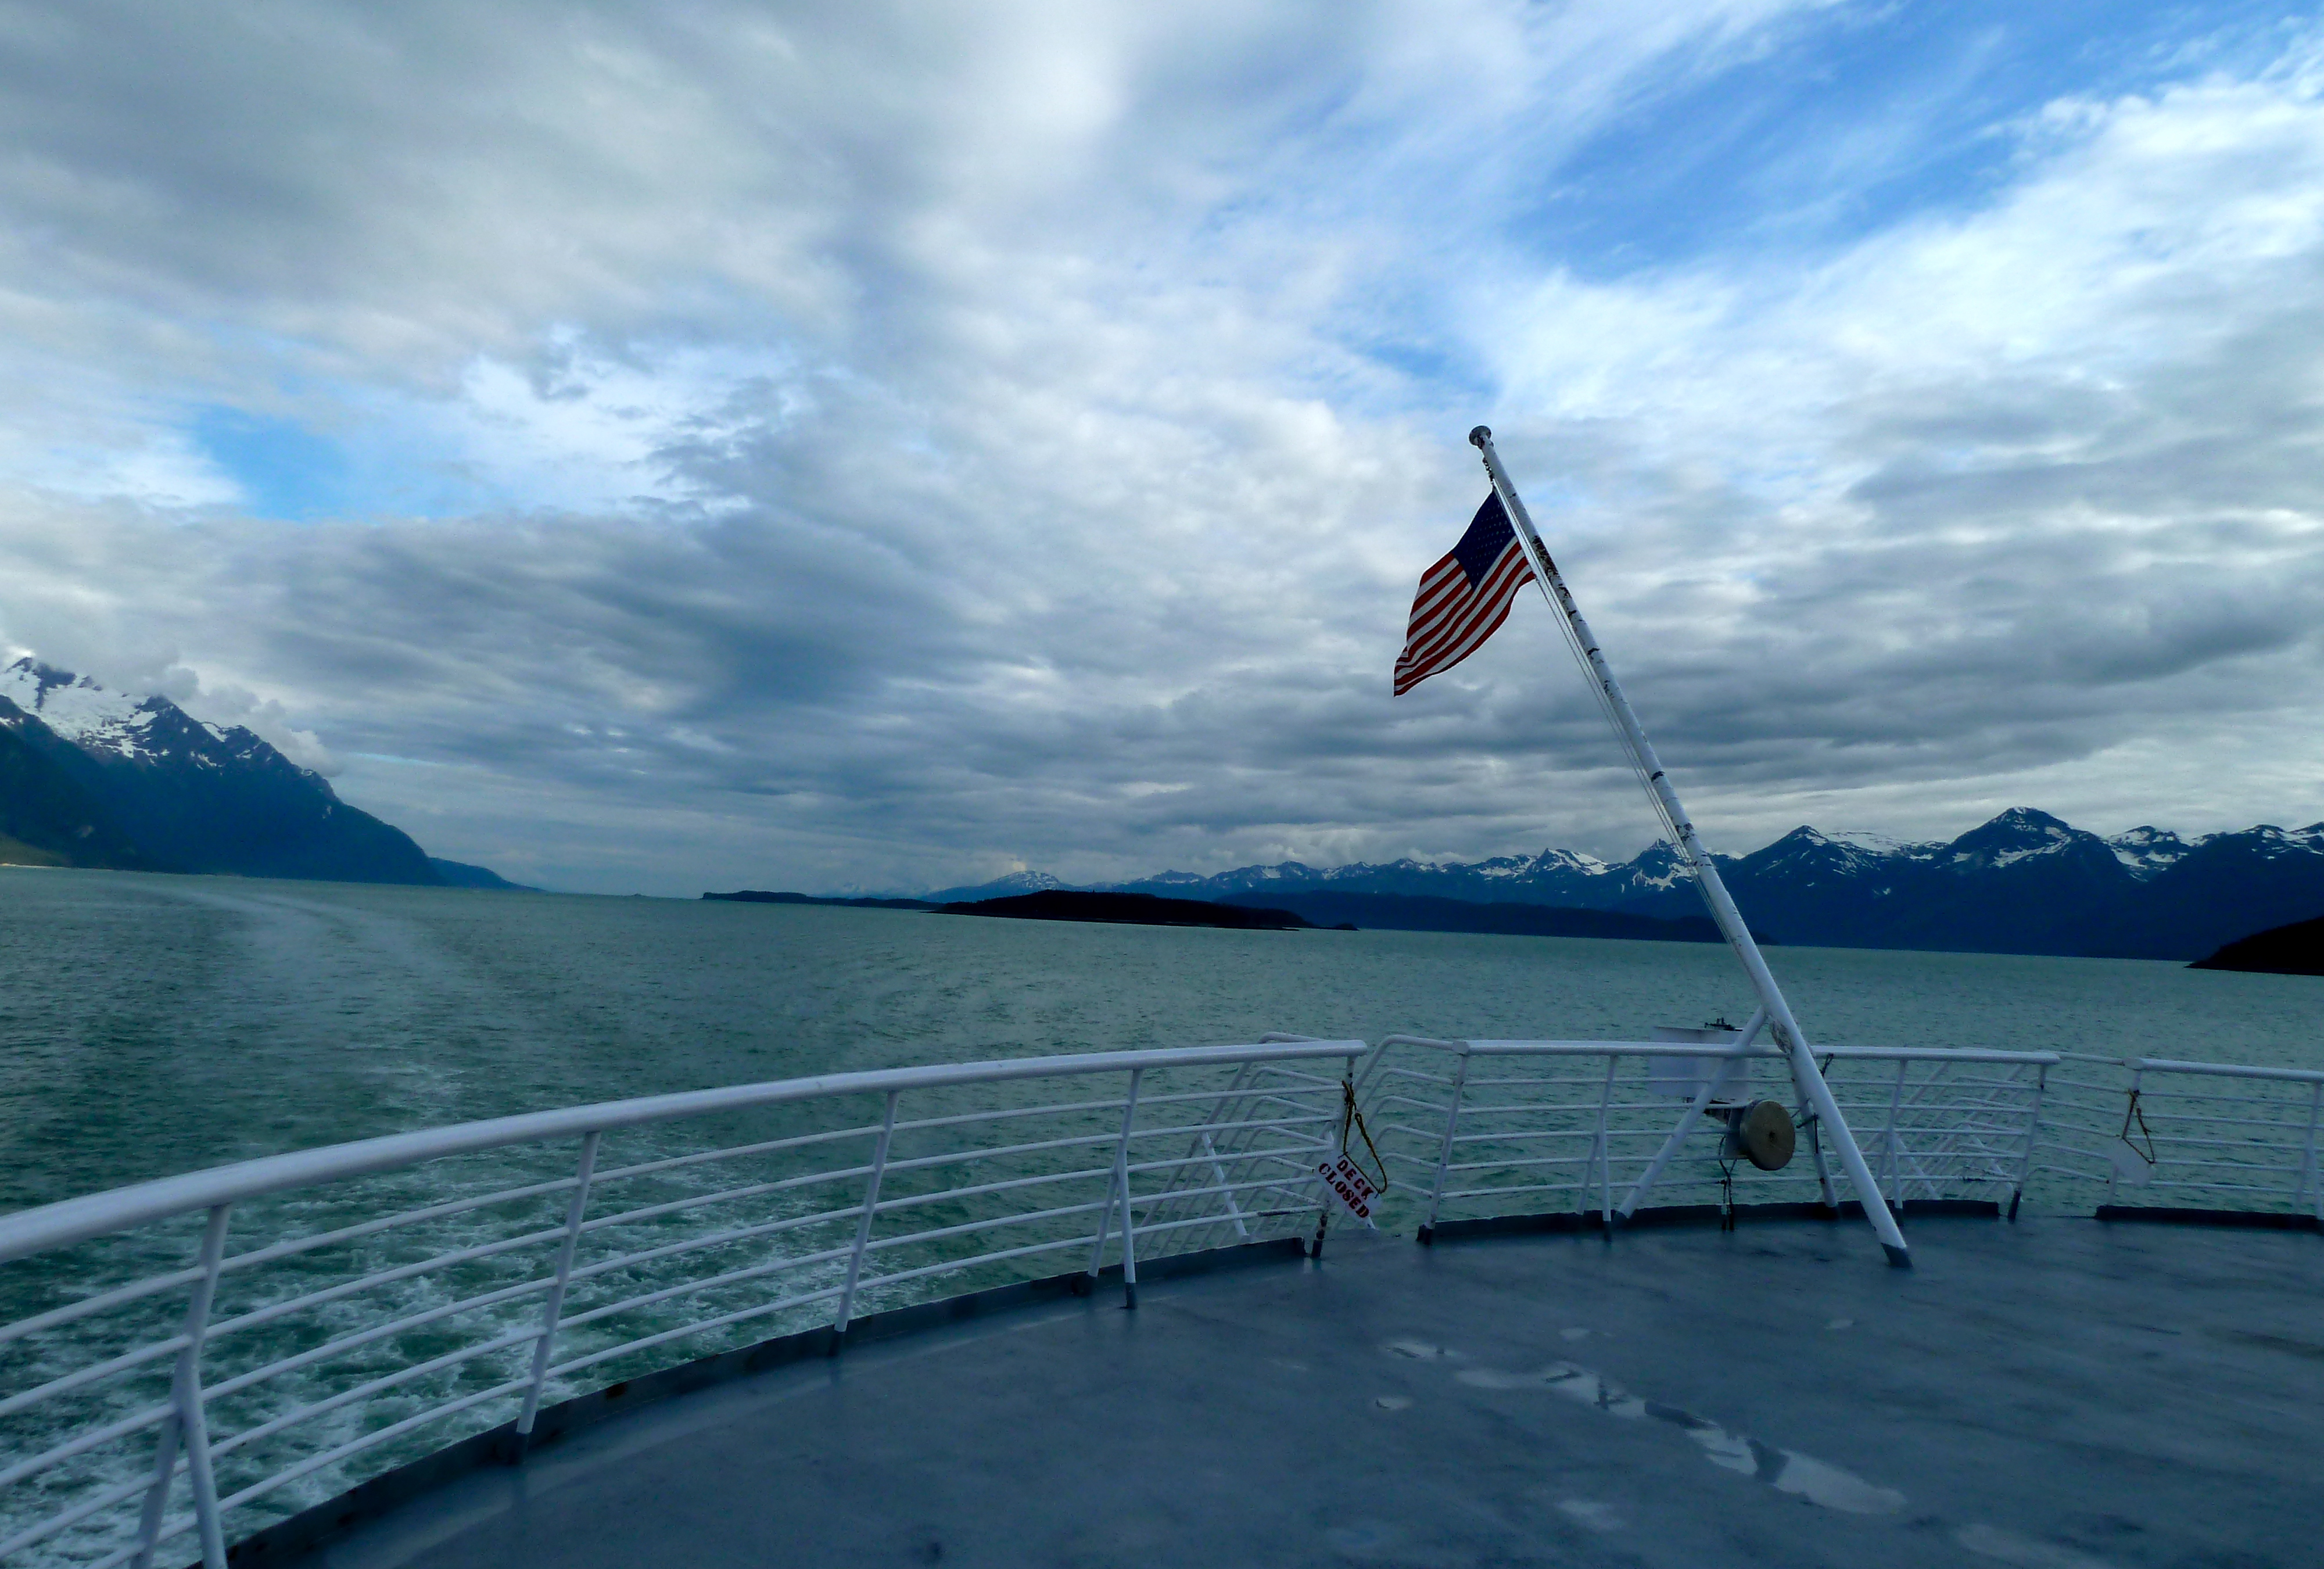 Stunning scenery makes an Alaska Marine Highway trip worth every minute.